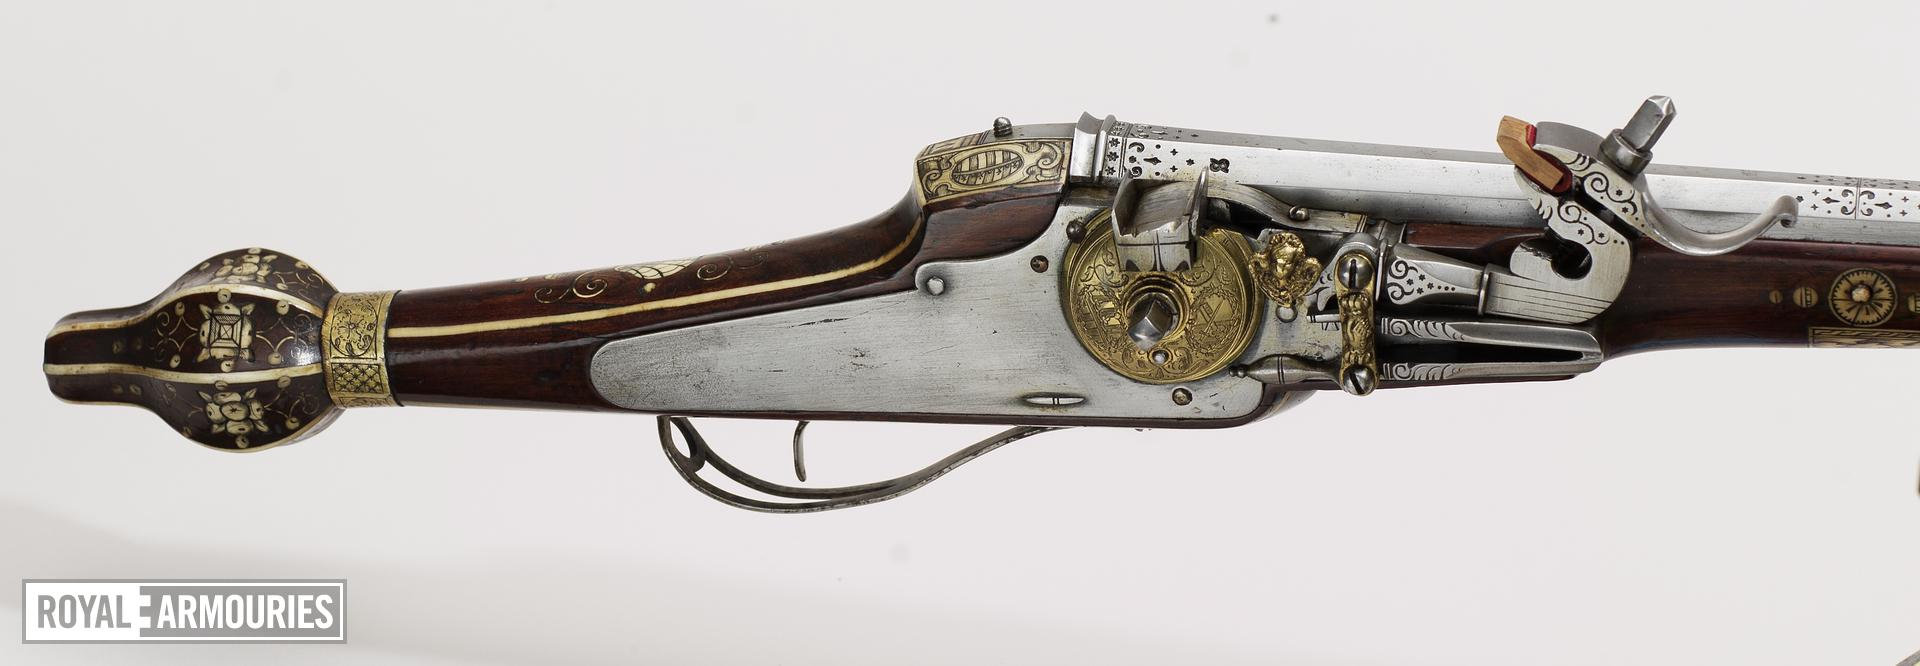 Wheellock muzzle-loading holster pistol - N/A For the guards of the Elector Christian II of Saxony. One of a pair; see XII.1258